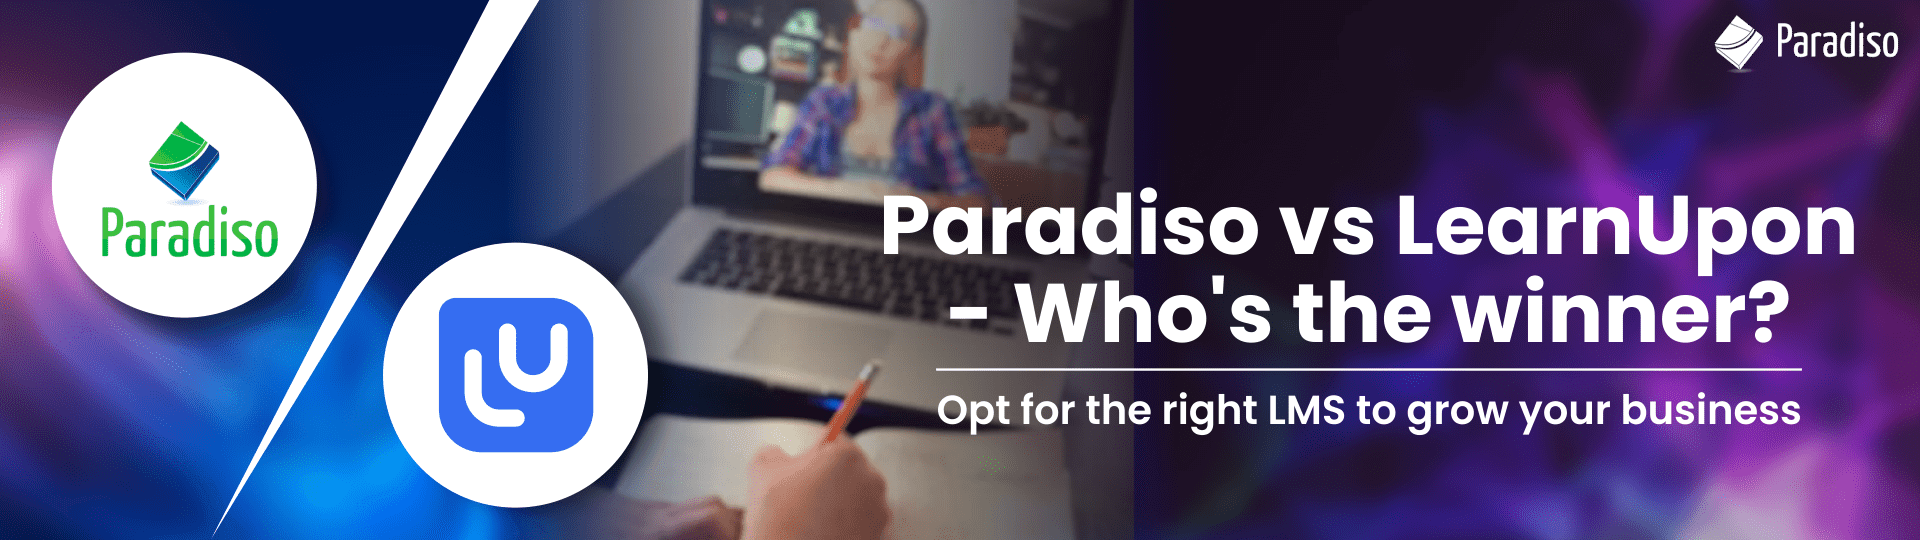 Paradiso vs LearnUpon - Who's the winner?